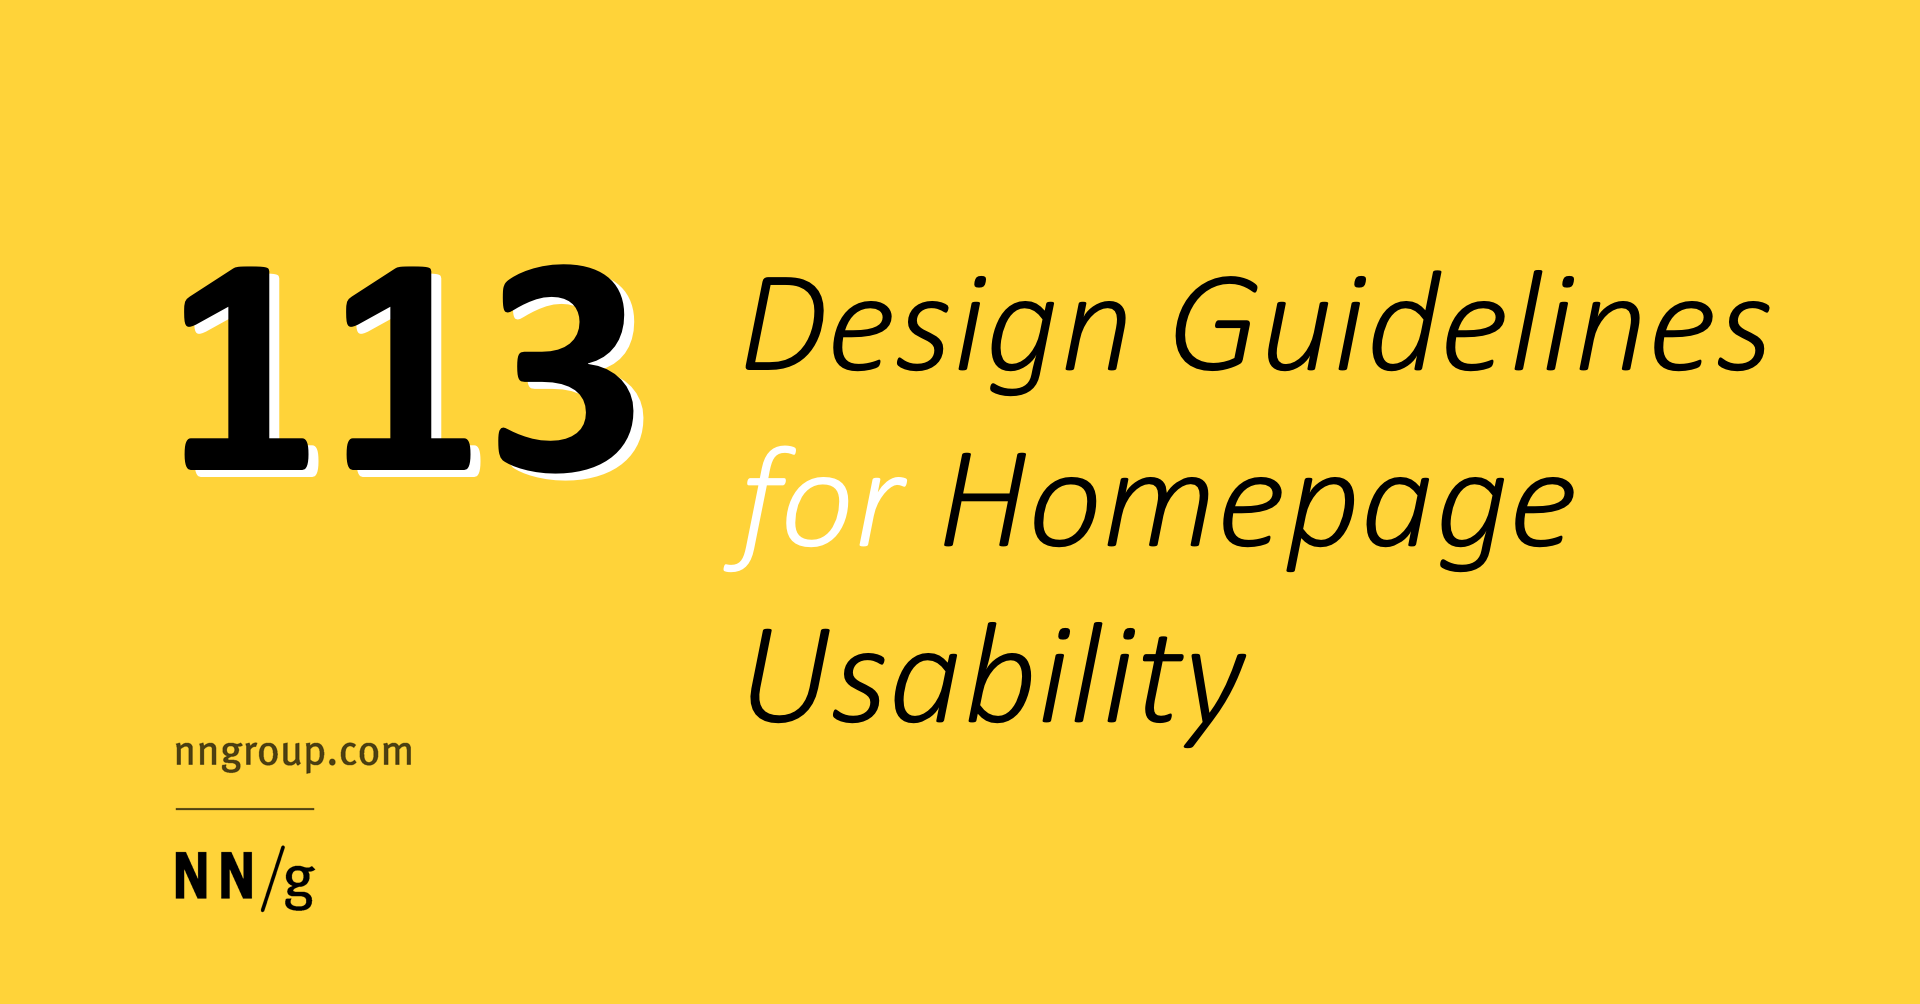 113 Design Guidelines for Homepage Usability (Jakob Nielsen)